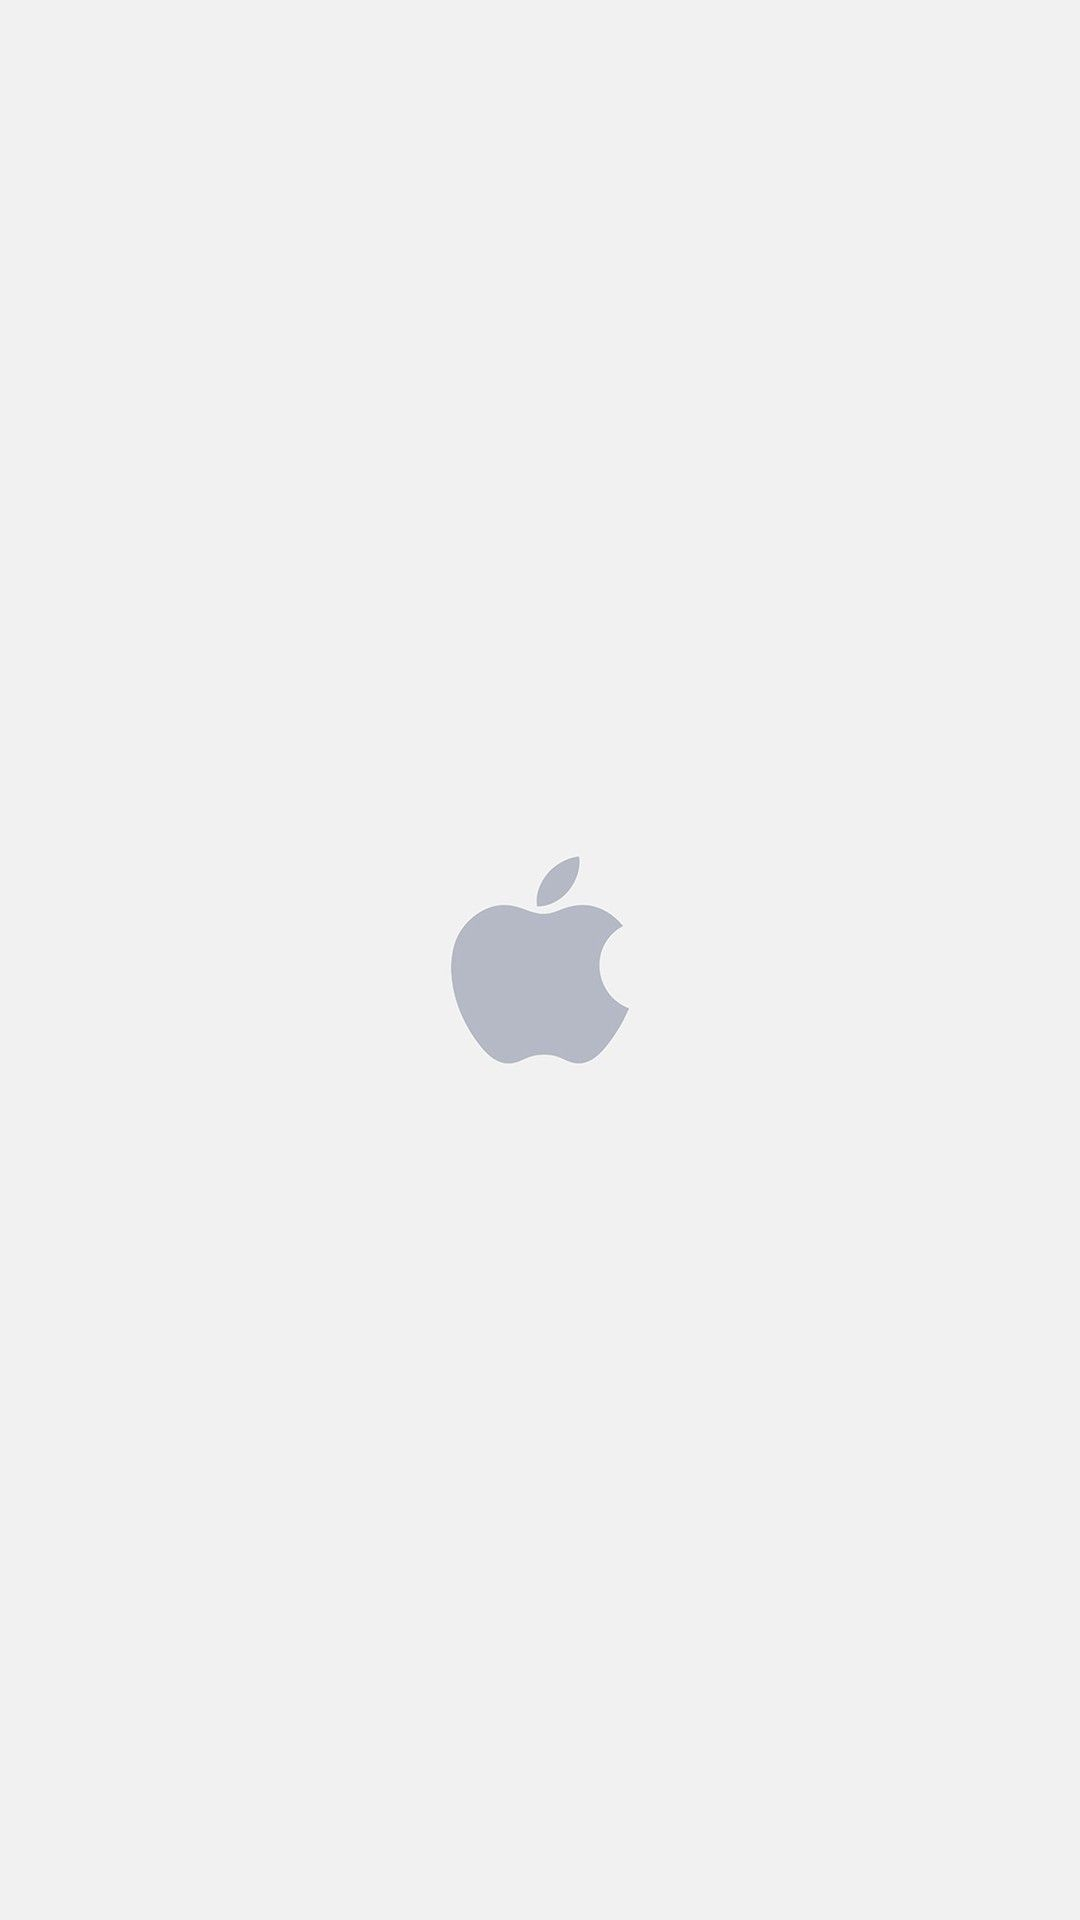 Best Of Hd Wallpaper For Iphone White Wallpaper In 2020 Apple